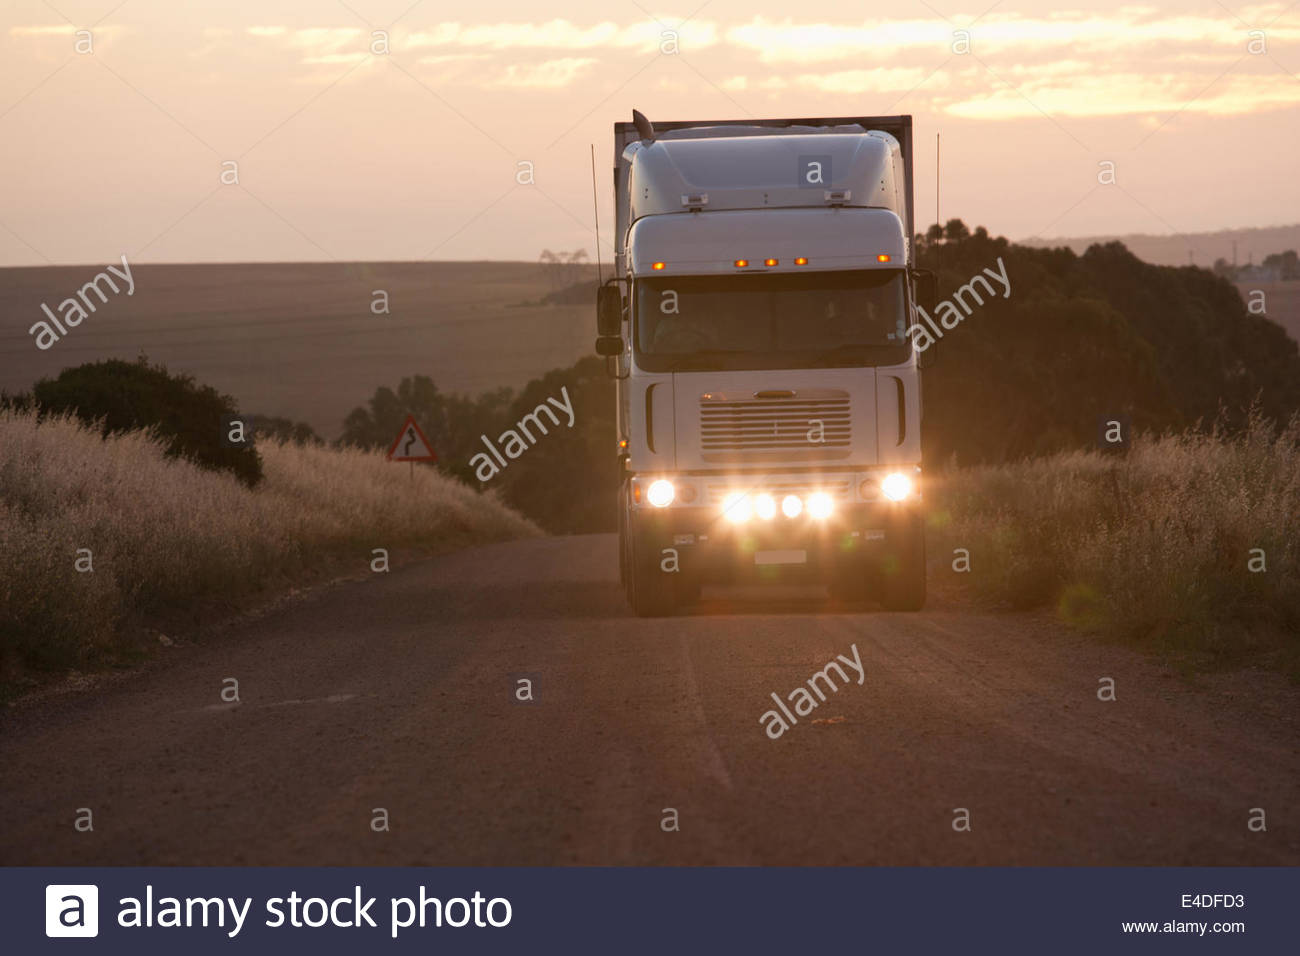 Semi-truck driving in dirt road - Stock Image